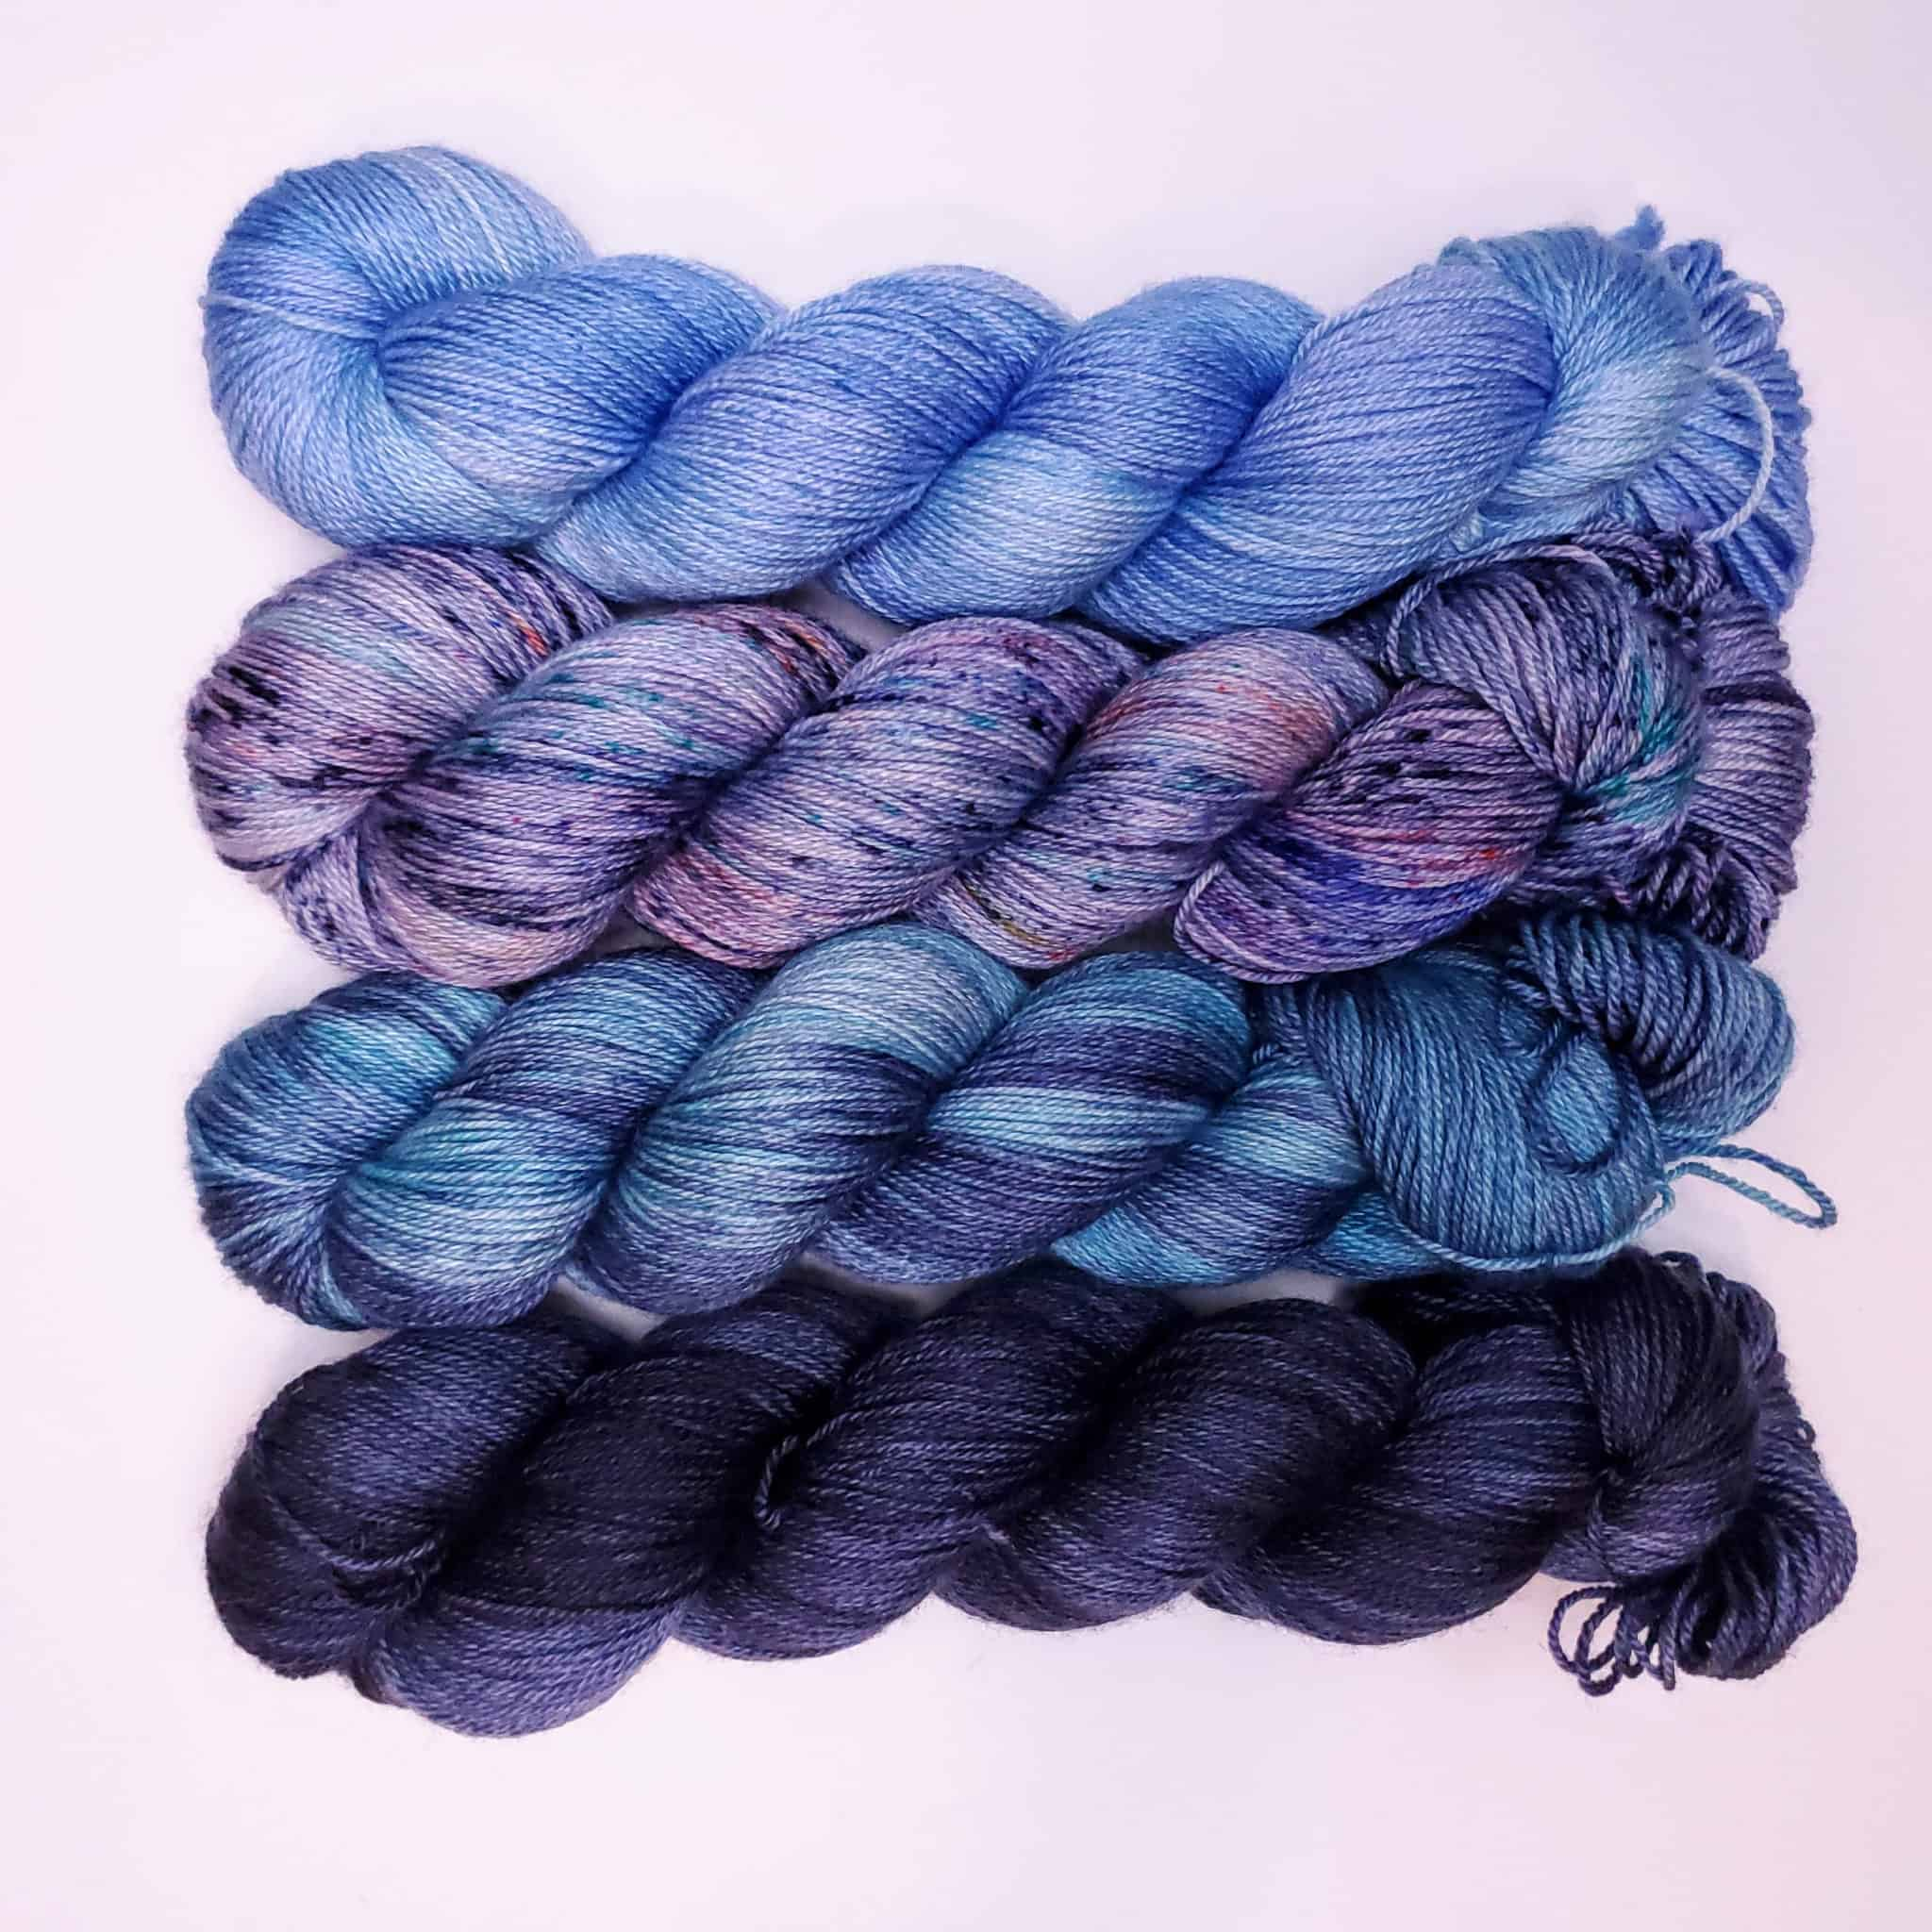 Skeins of yarn in shades of blue and purple.